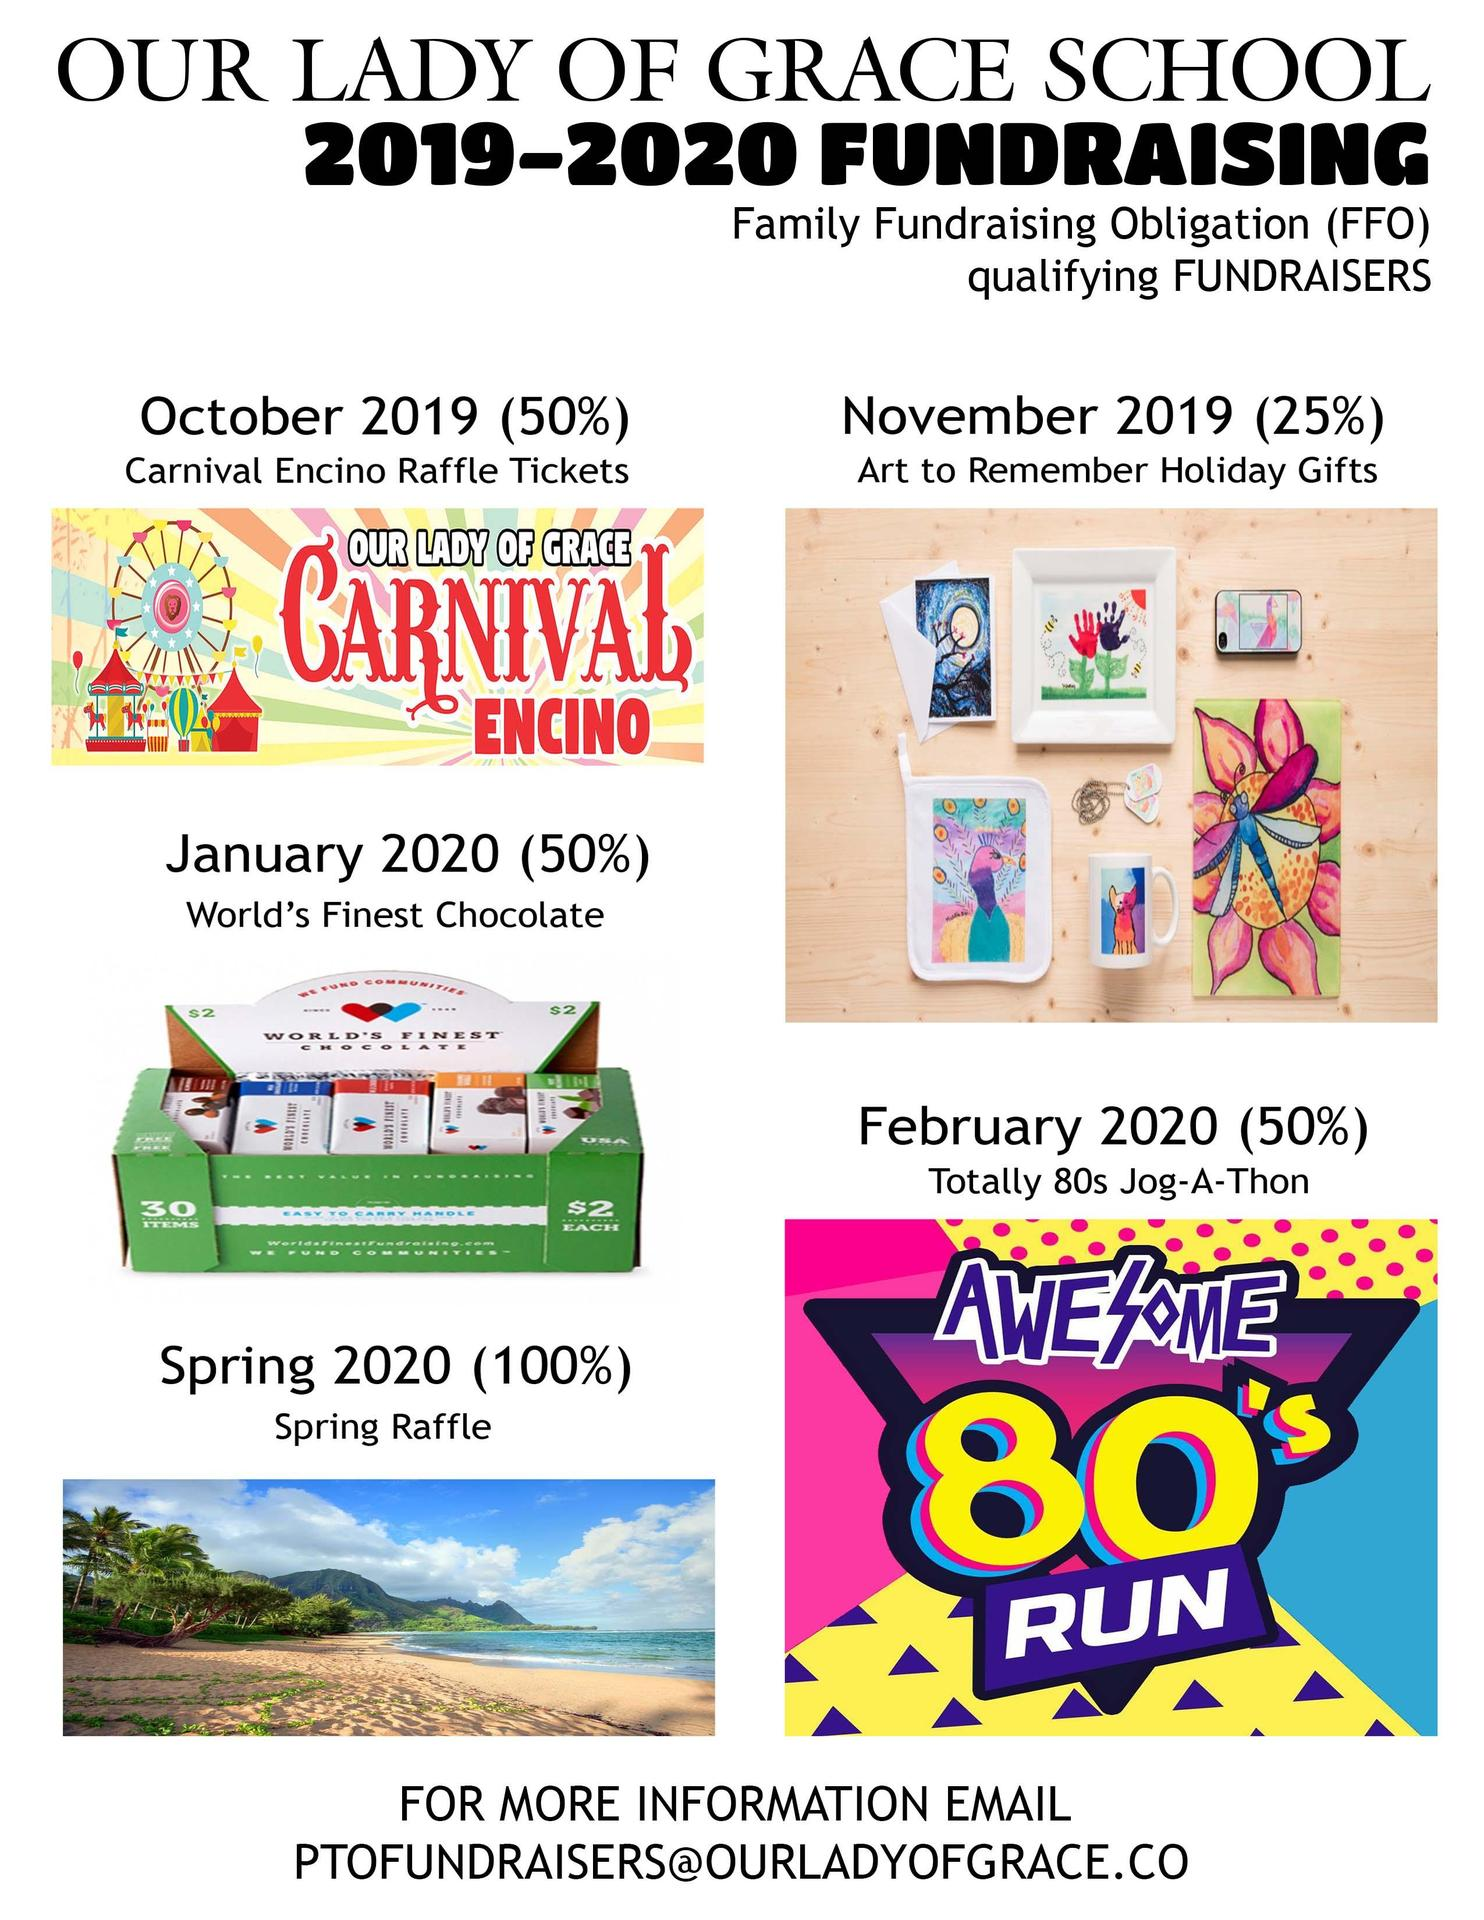 2019-2020 Fundraising at a glance